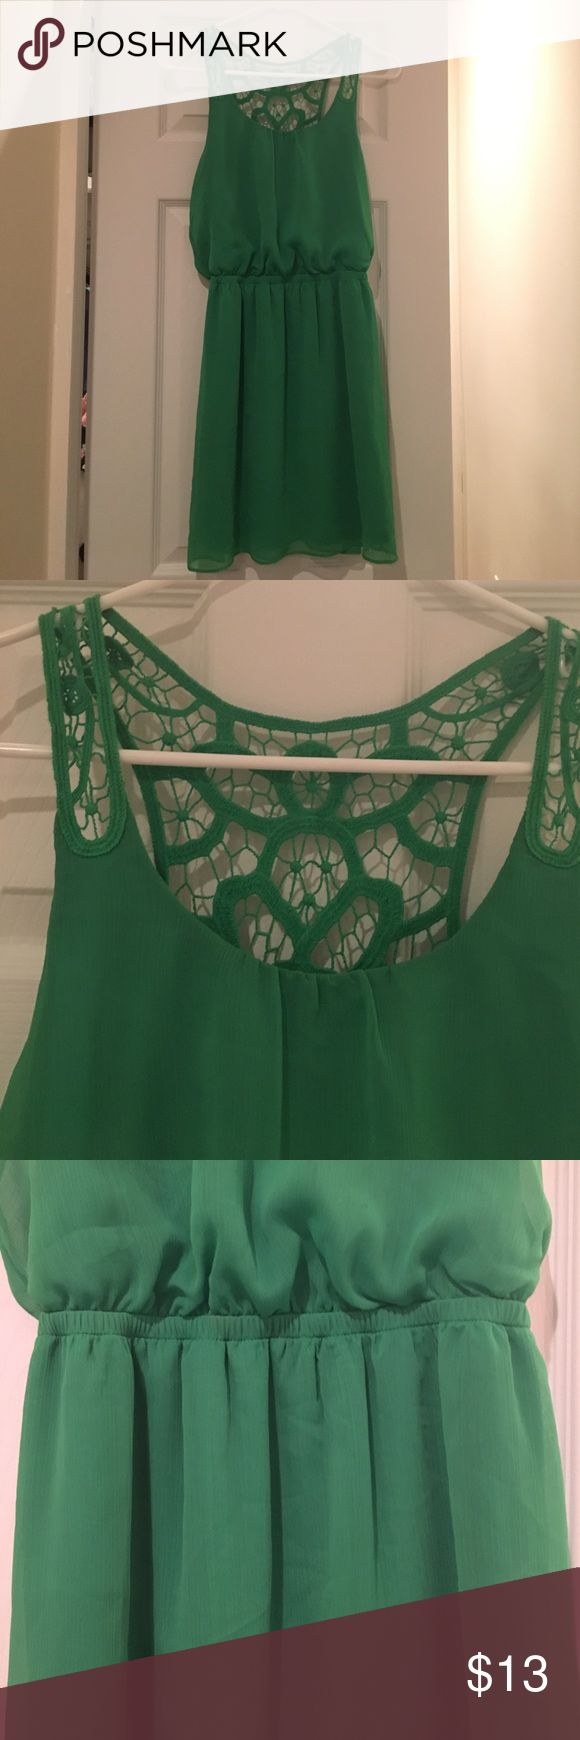 """Kelly green dress Kelly green dress with beautiful lace detailing. Only worn once. On 5'1"""" model. 100% polyester Express Dresses Mini"""